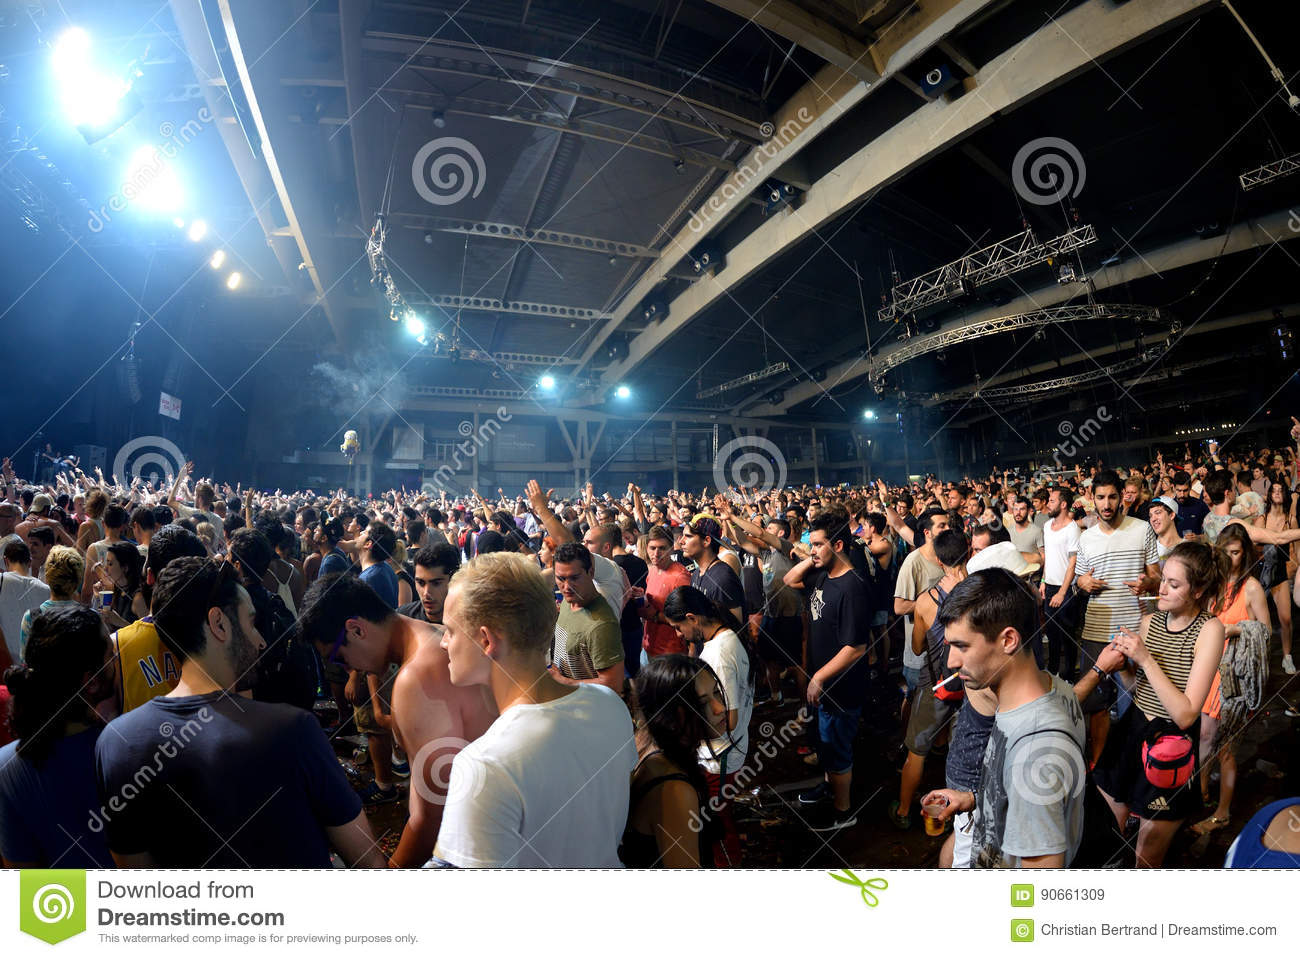 Crowd dance in a concert at Sonar Festival